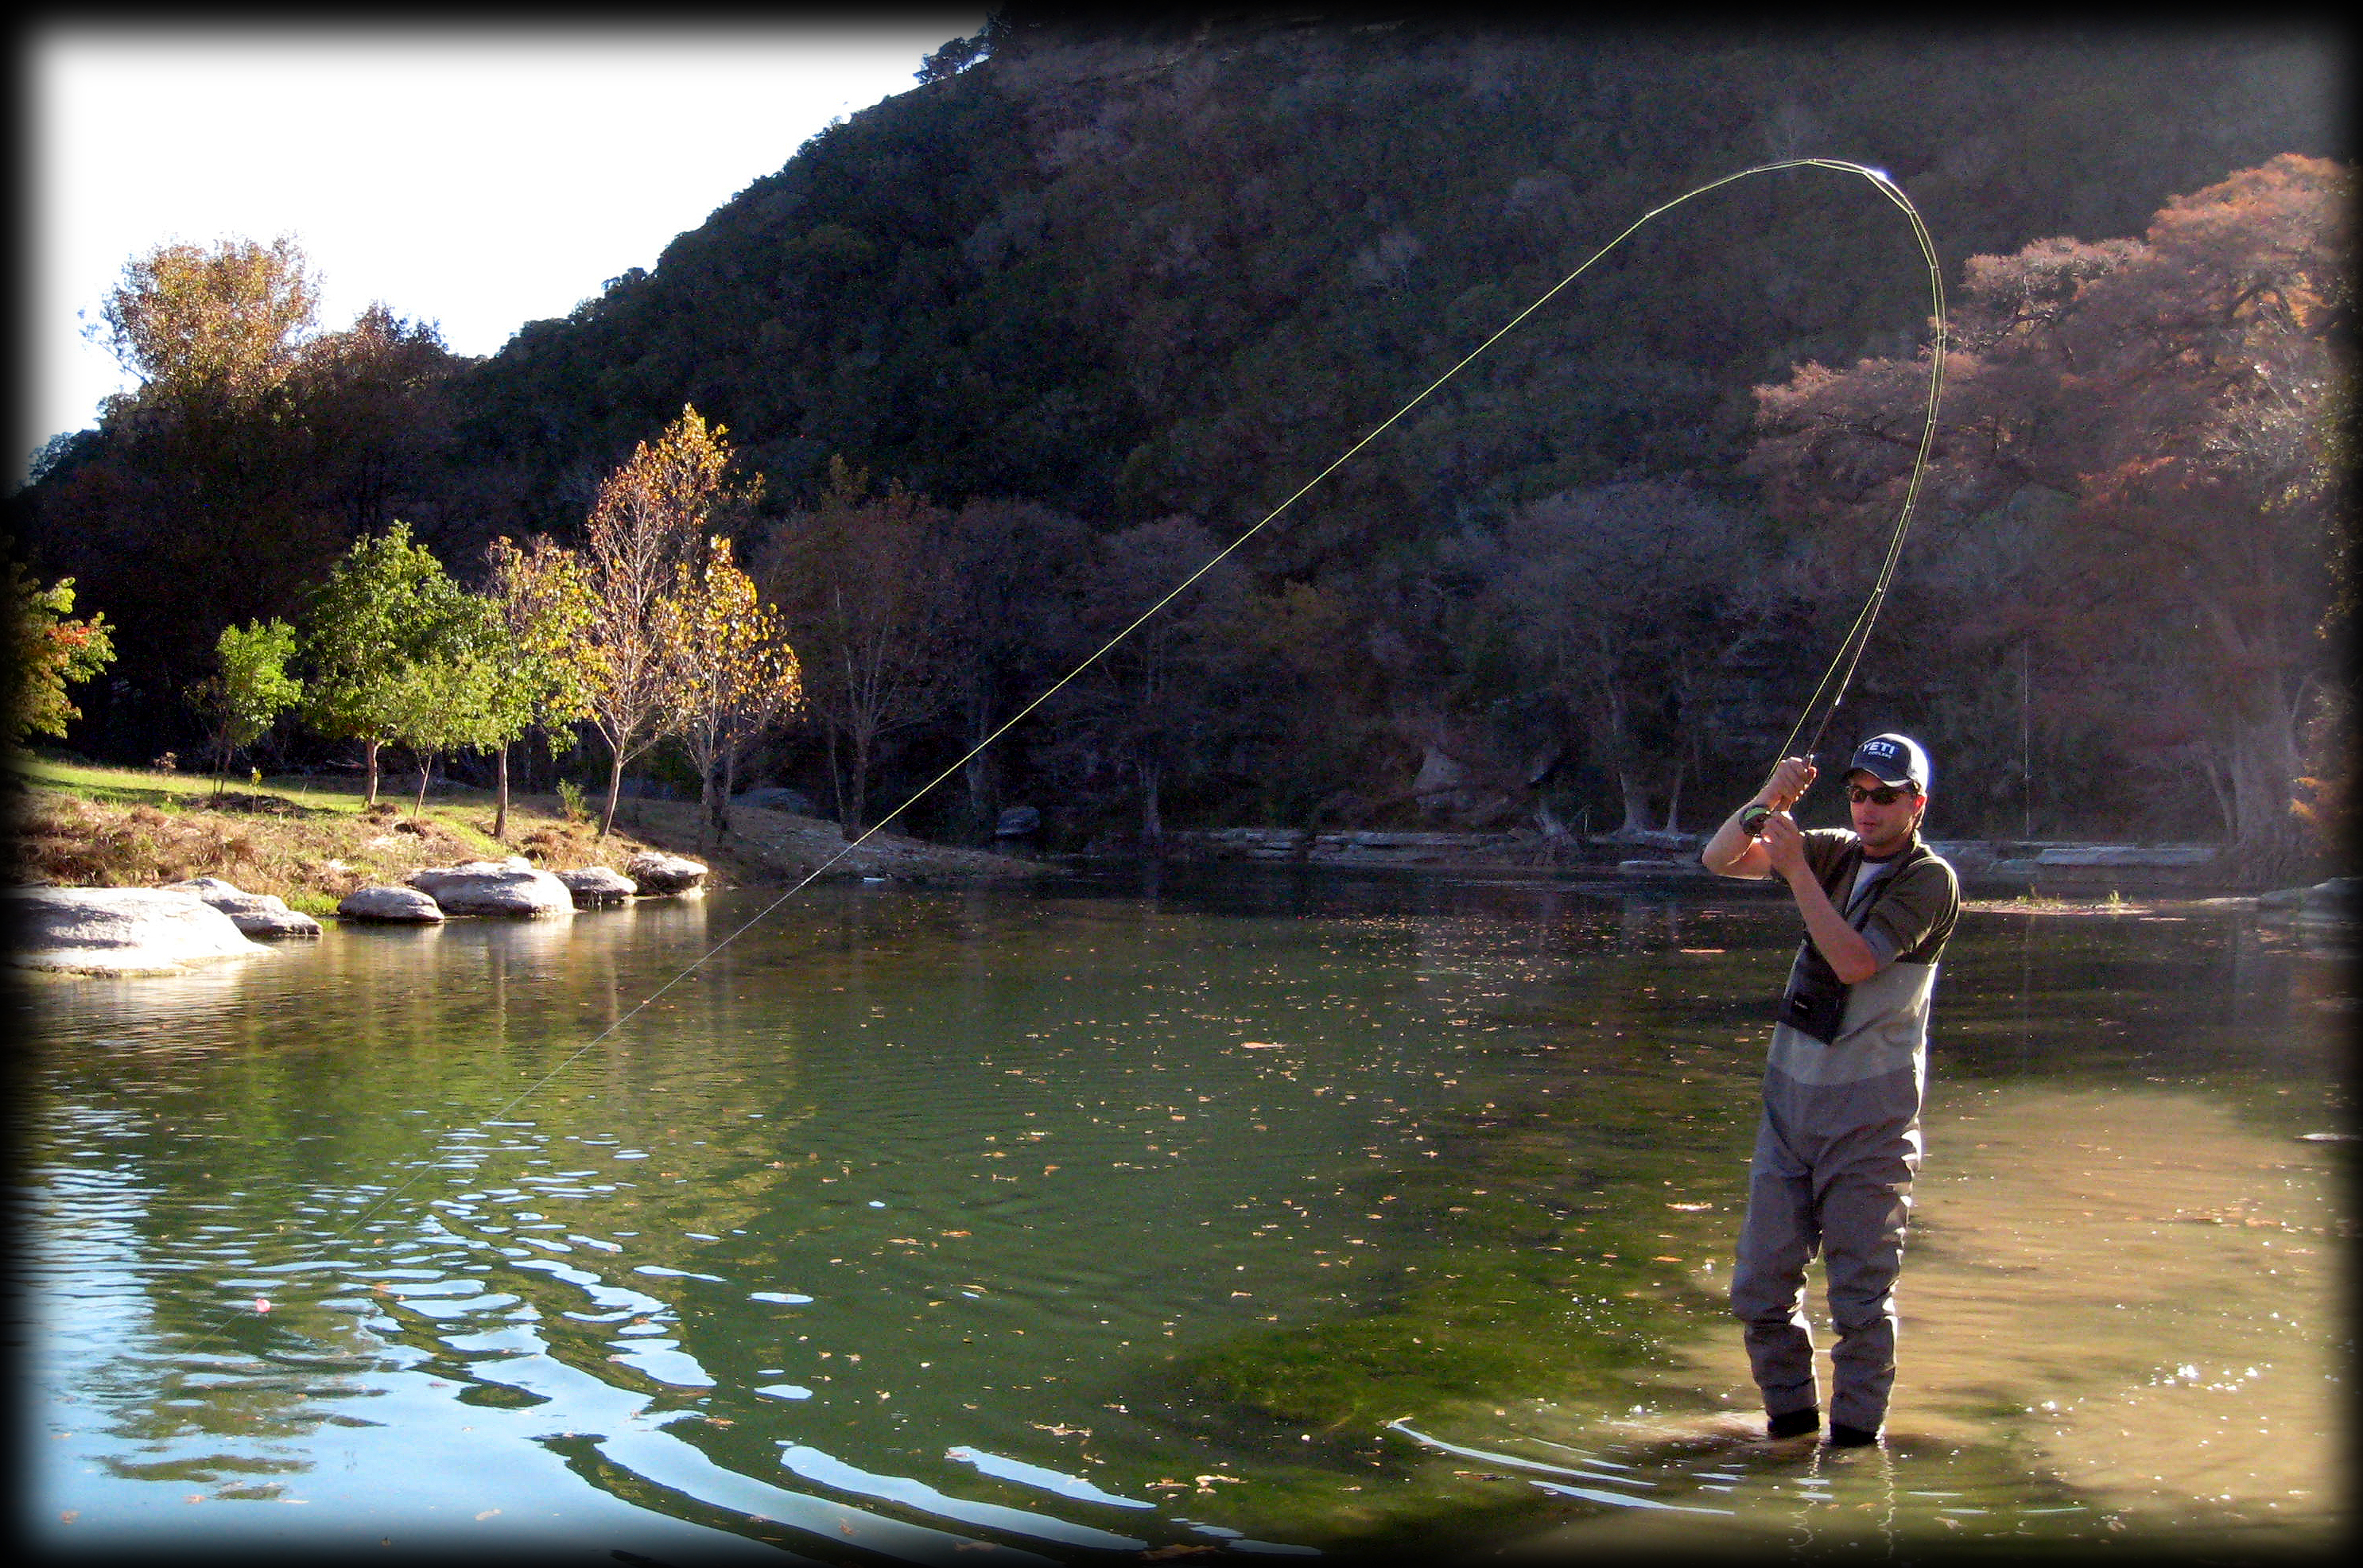 guadalupe river trout fishing report 11 28 09